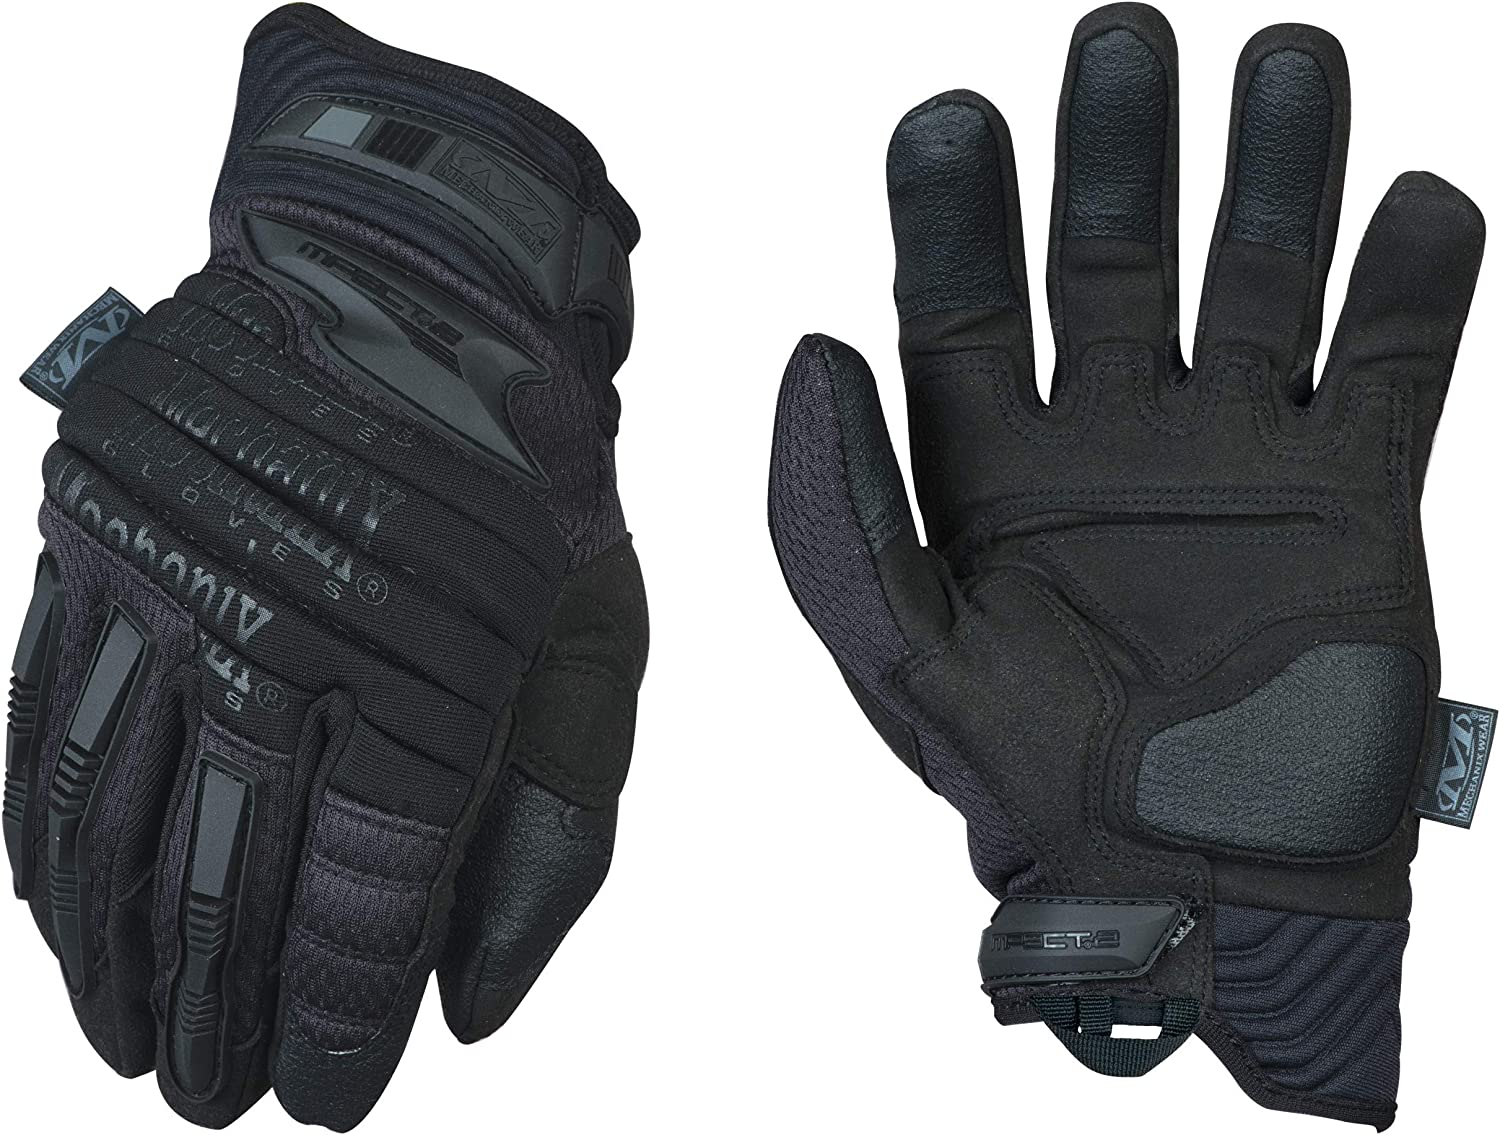 Mechanix Wear: M-Pact 2 Our shop OFFers the best service Covert Gloves Tactical Work discount All Large